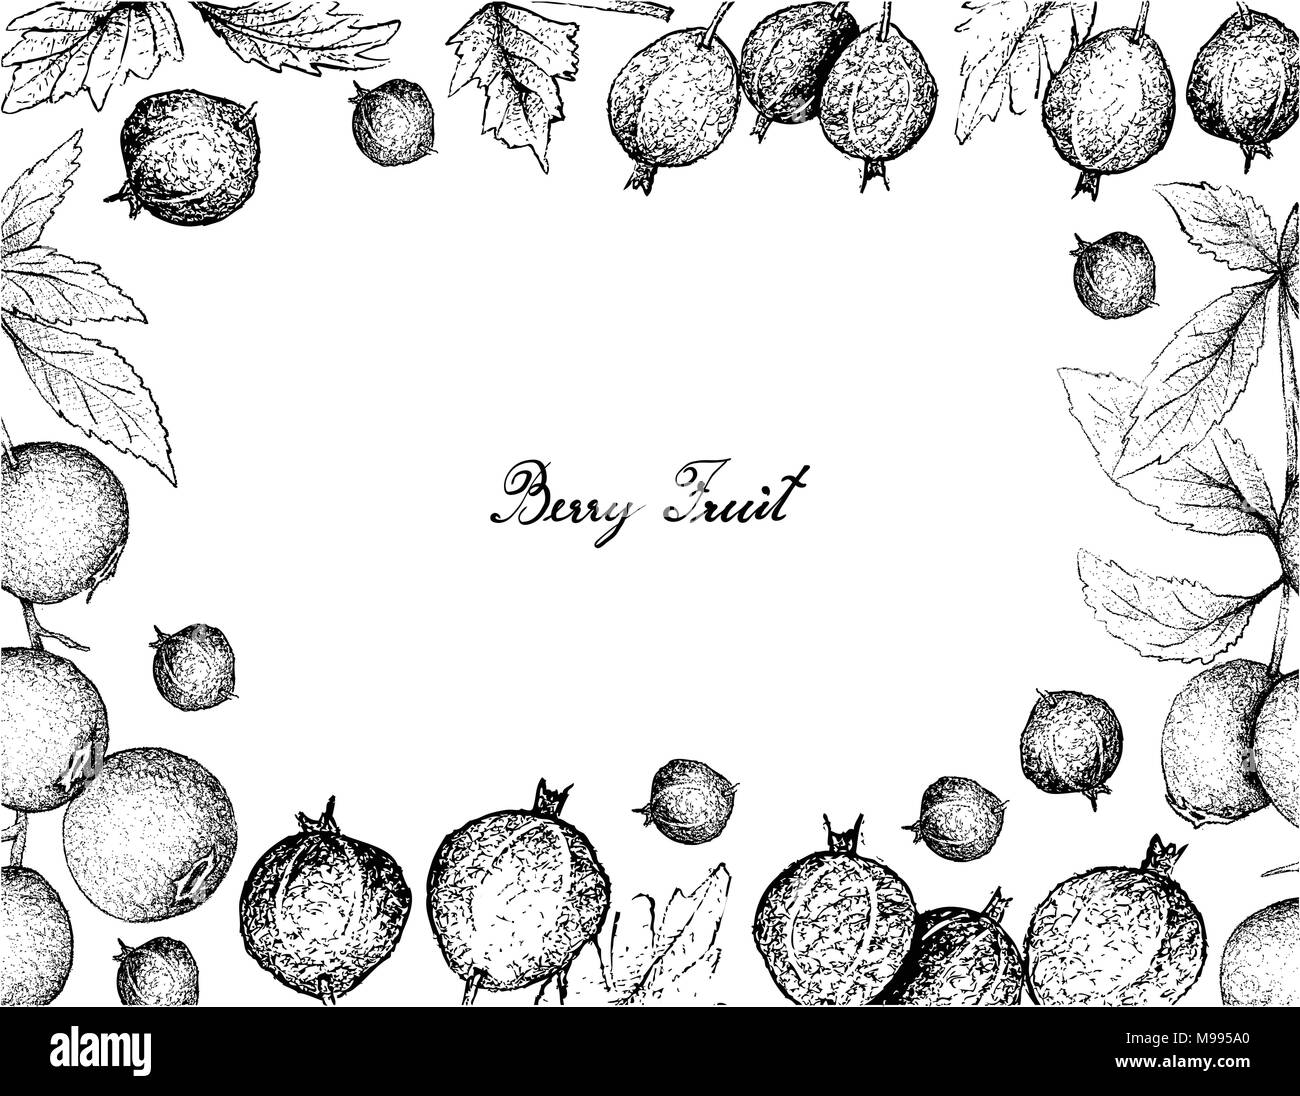 Berry Fruits, Illustration Frame of Hand Drawn Sketch Fresh Black Velvet Gooseberry or Ribes Oxyacanthoides Fruit Isolated on White Background. - Stock Vector